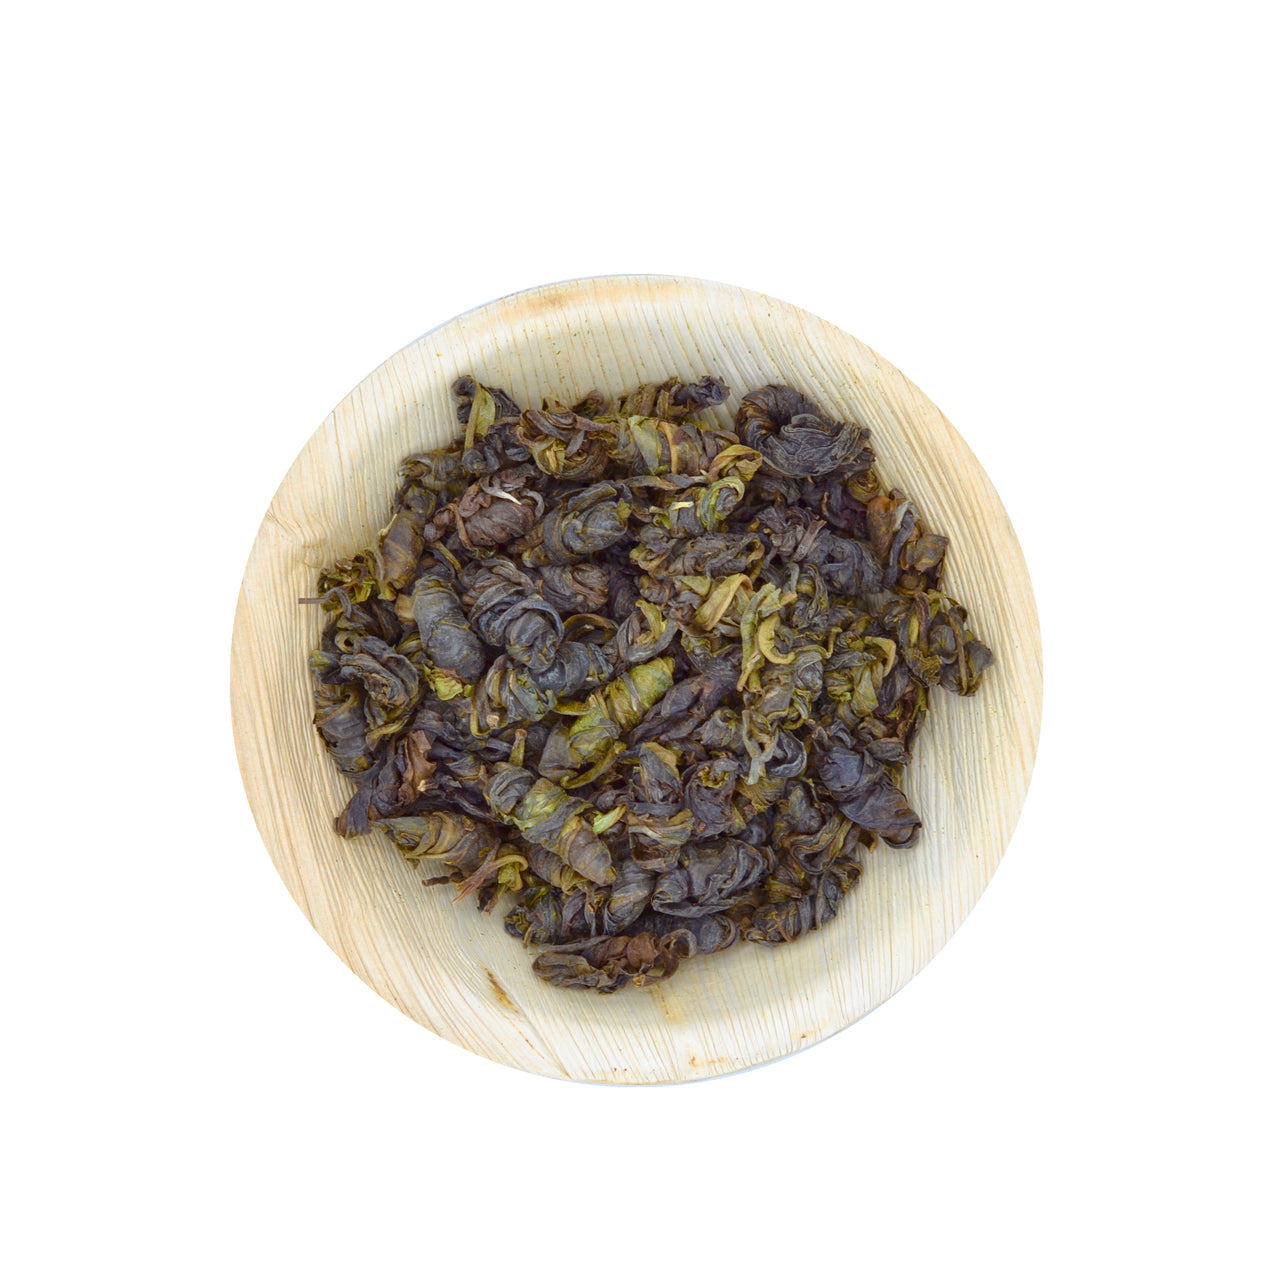 zomba pearls white tea